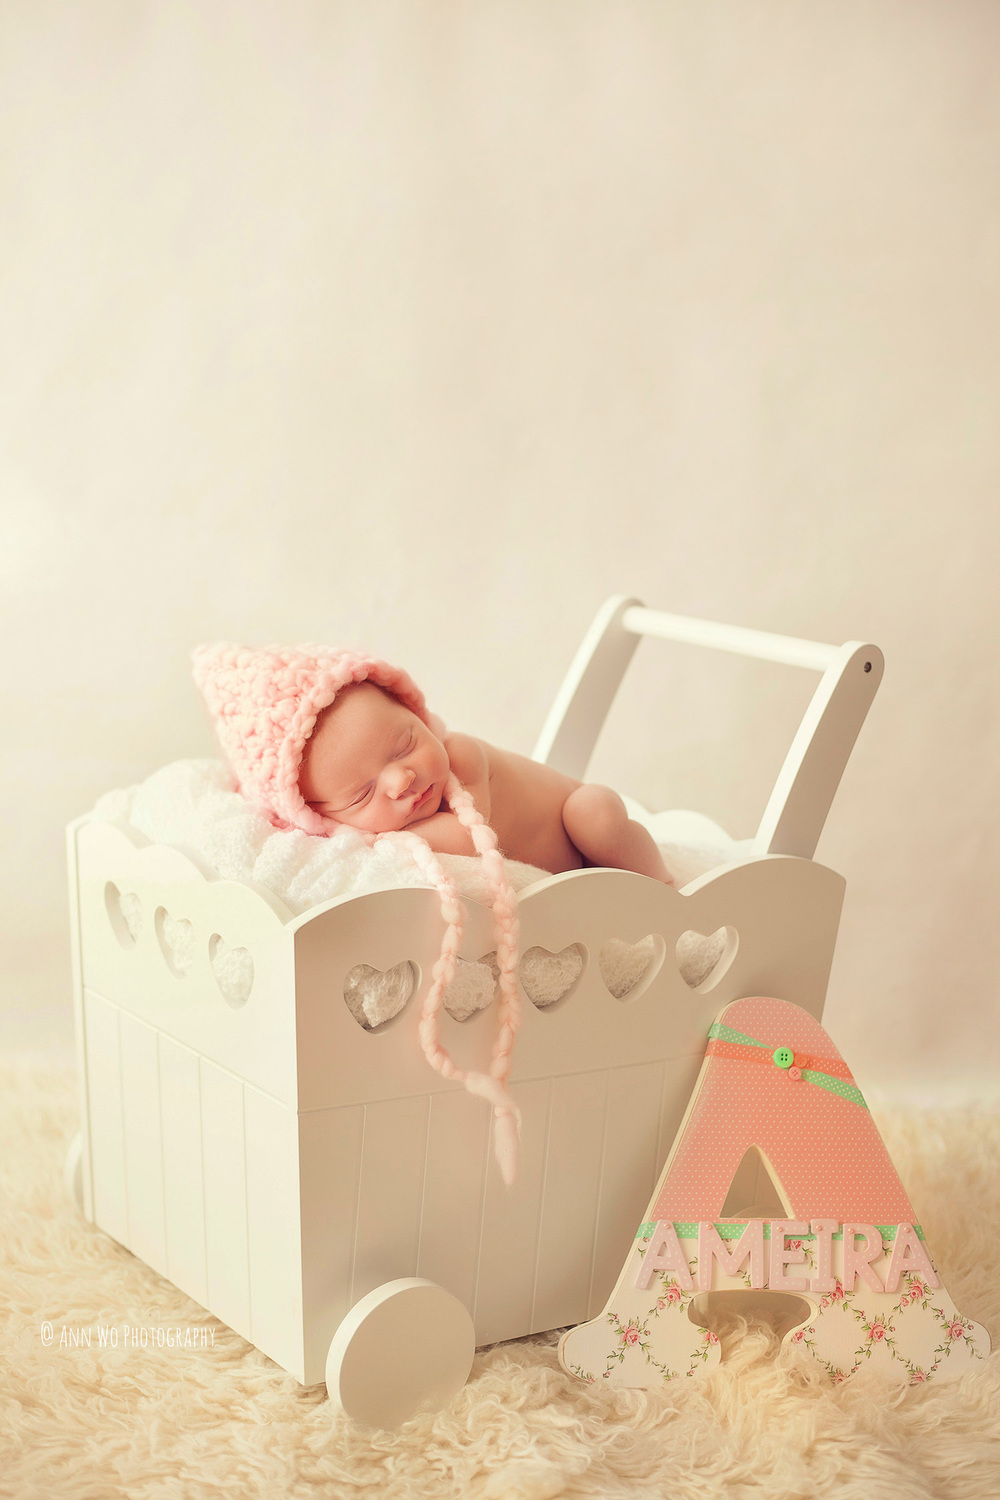 newborn-photographer-west-london-home-session-ann-wo12.jpg